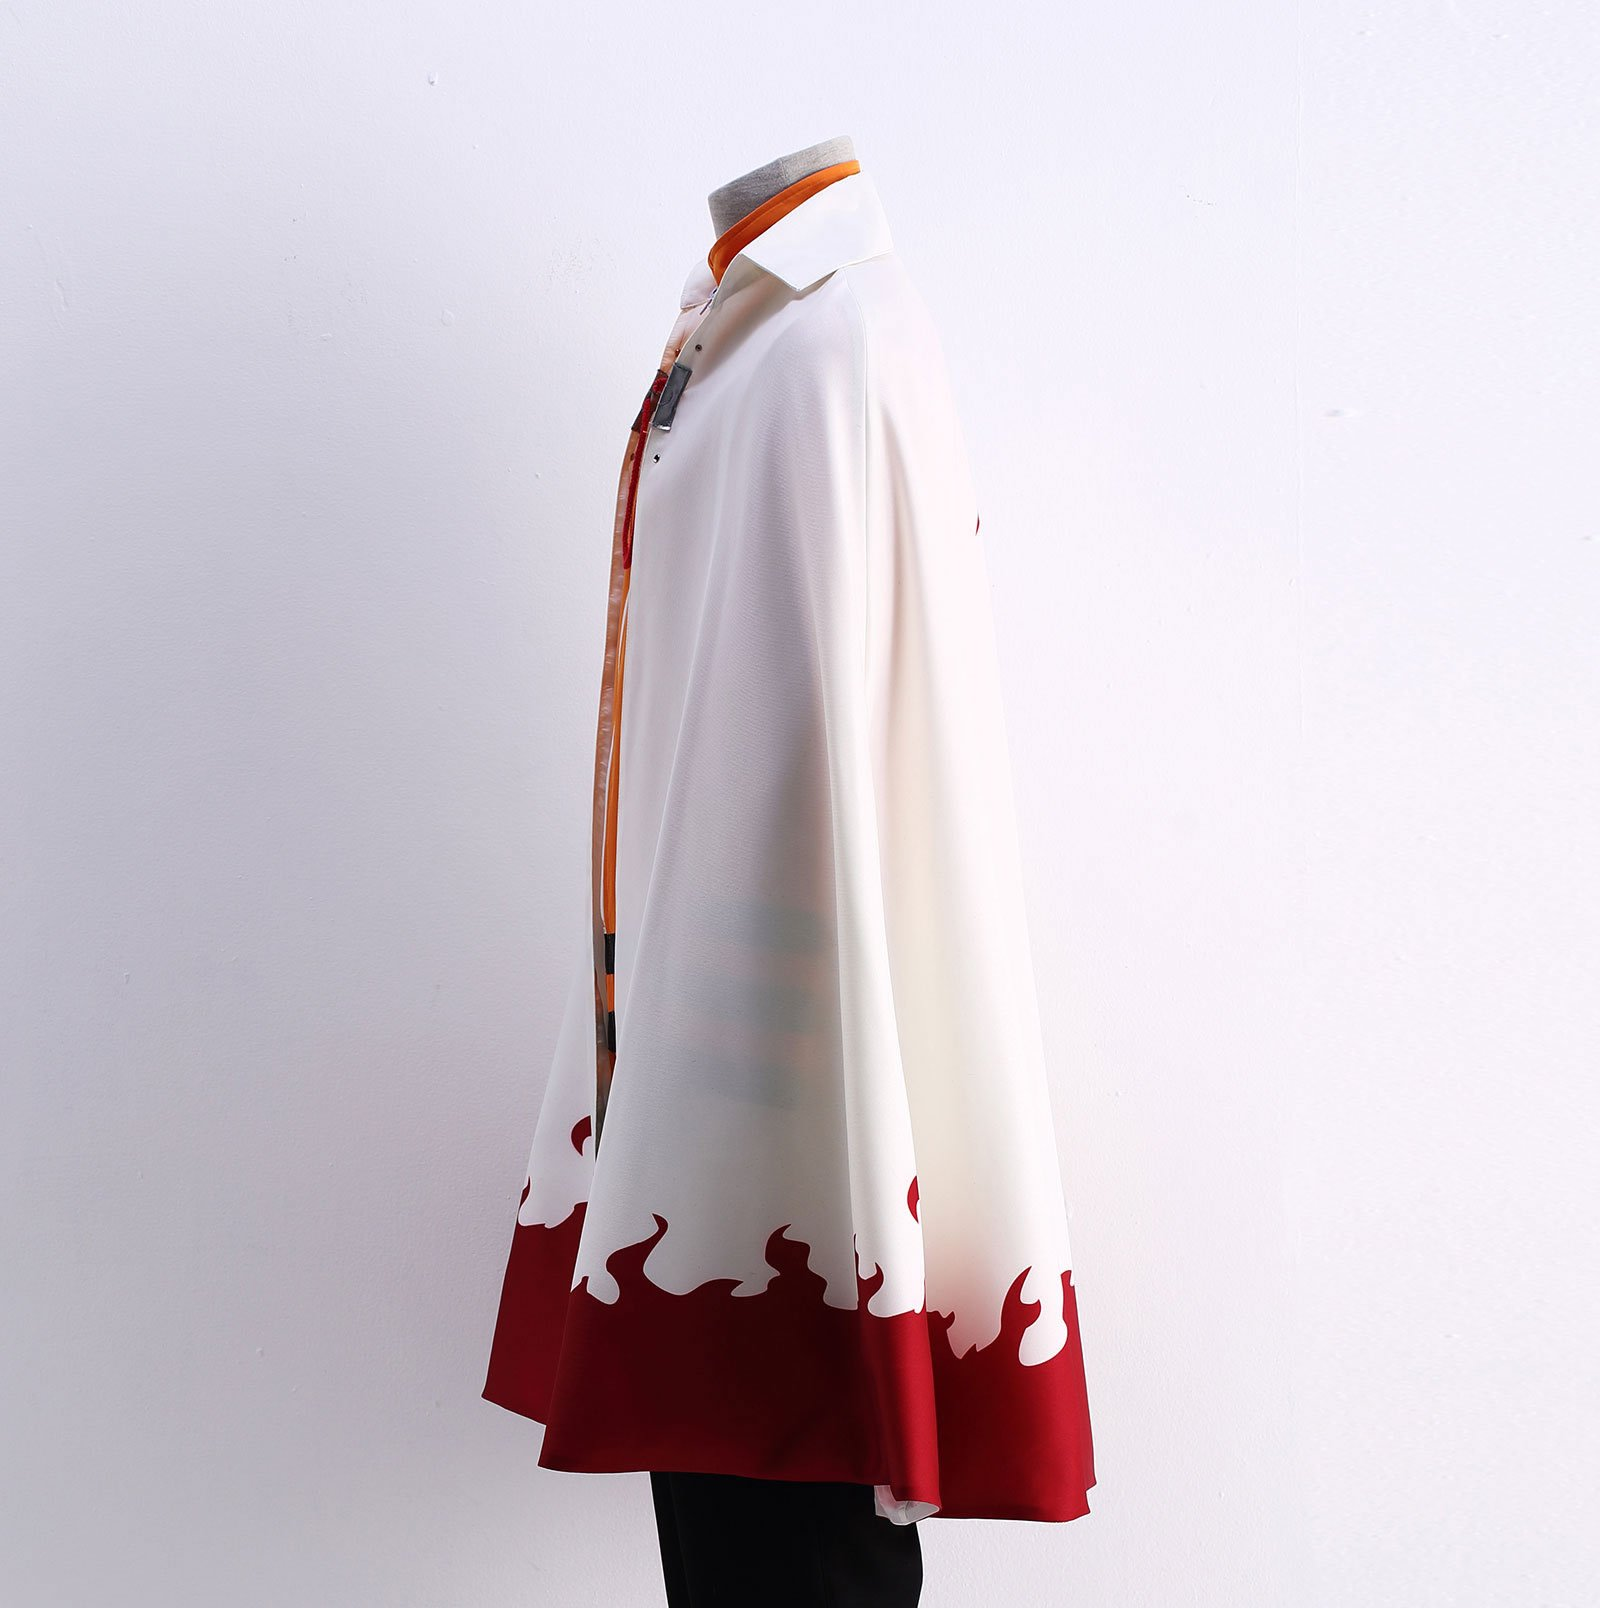 OURCOSPLAY US Size Men's Uzumaki Cloak 7th Hokage Cloak Boruto Cosplay Costume (Men US XL) by OURCOSPLAY (Image #2)